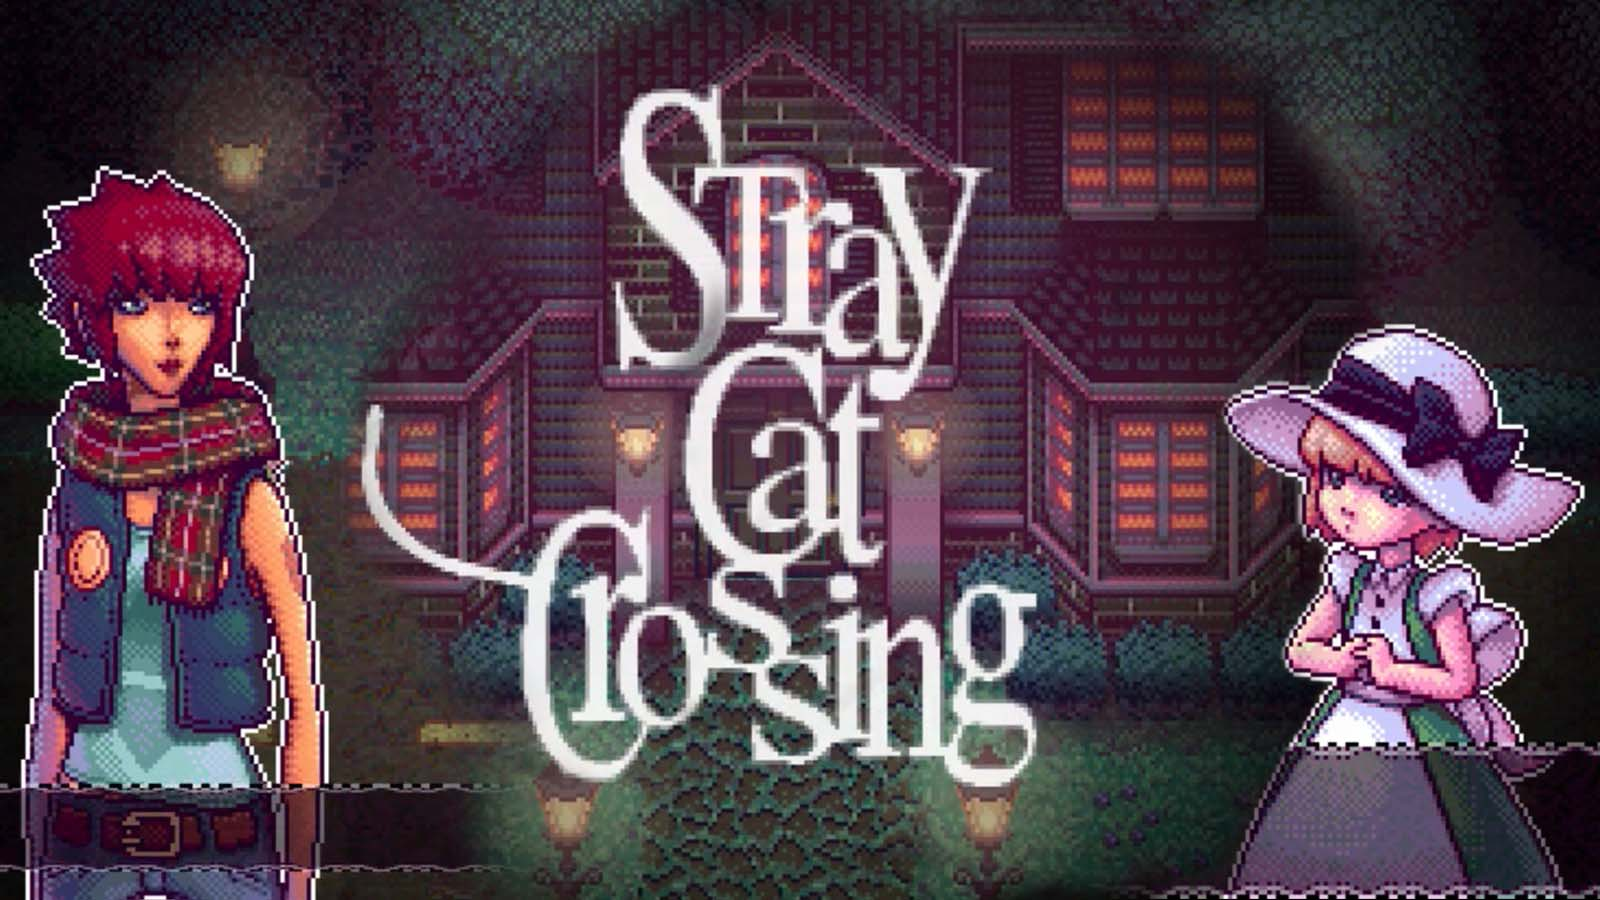 Stray Cats Crossing Picture